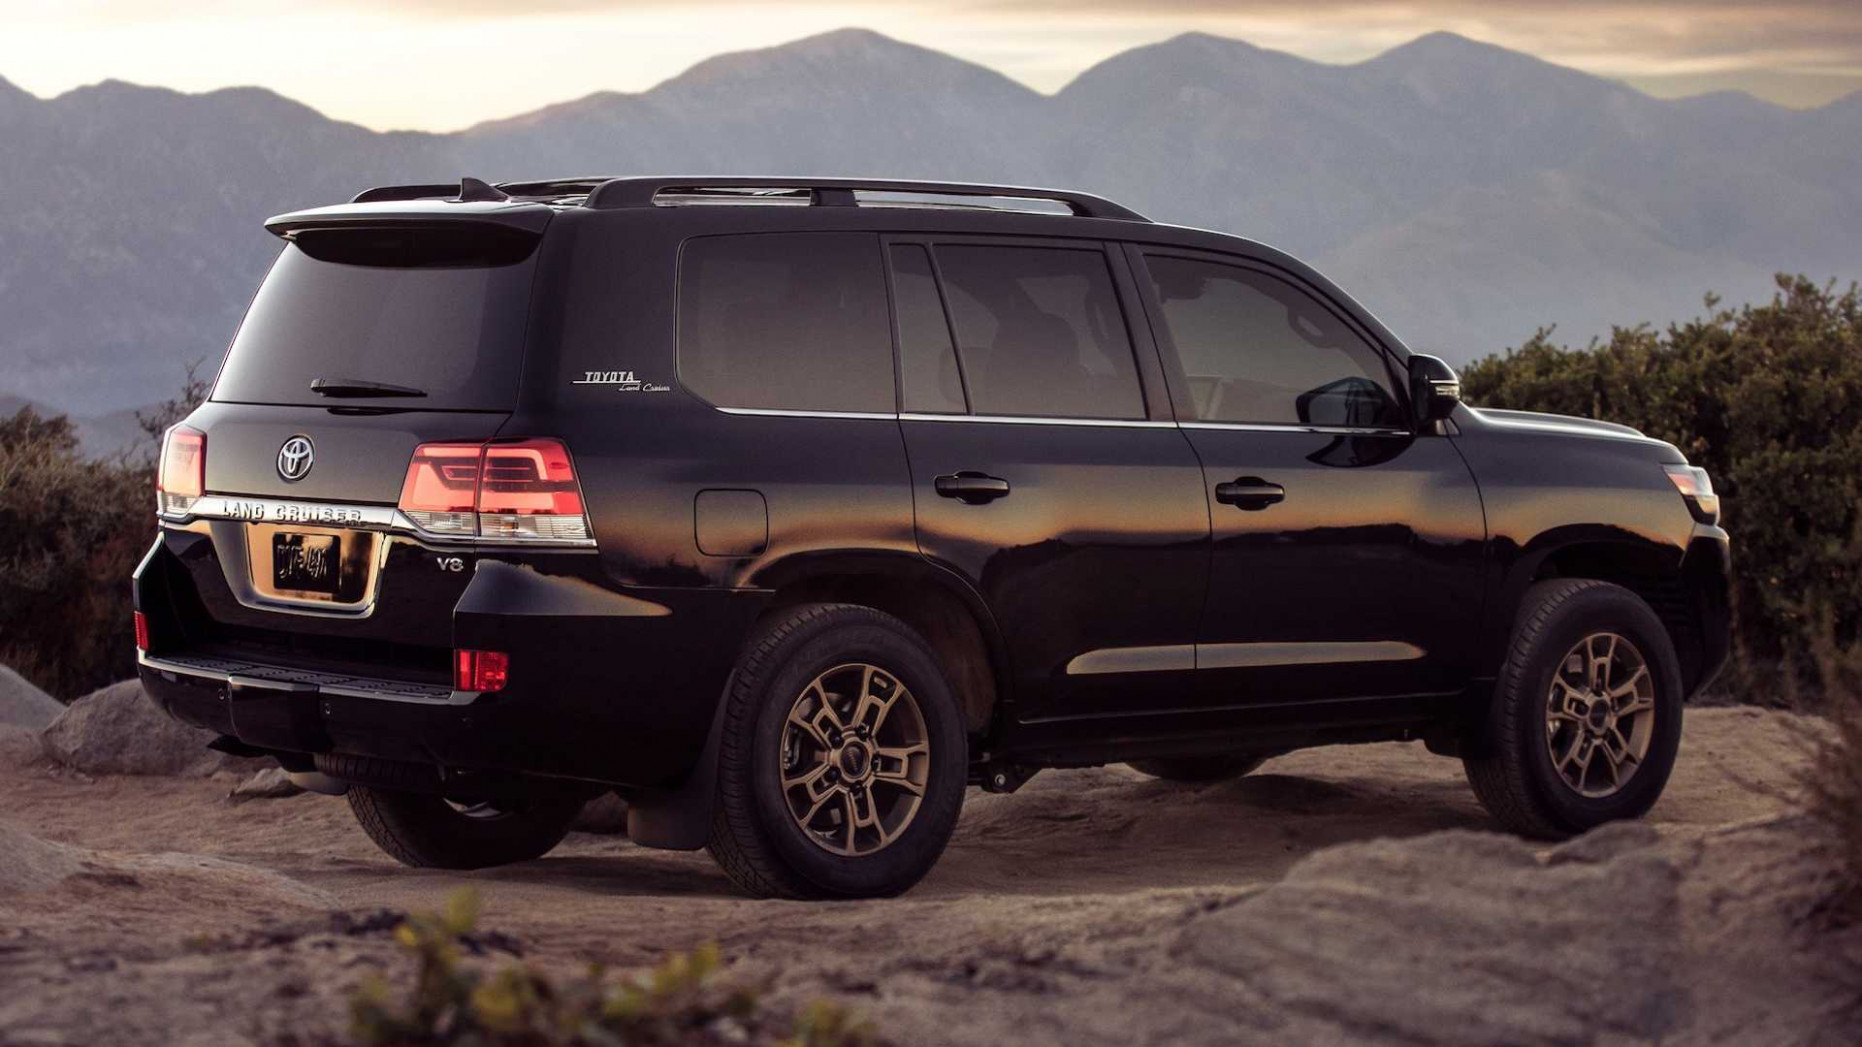 Toyota Land Cruiser Heritage Edition Offers Little, Costs A Lot